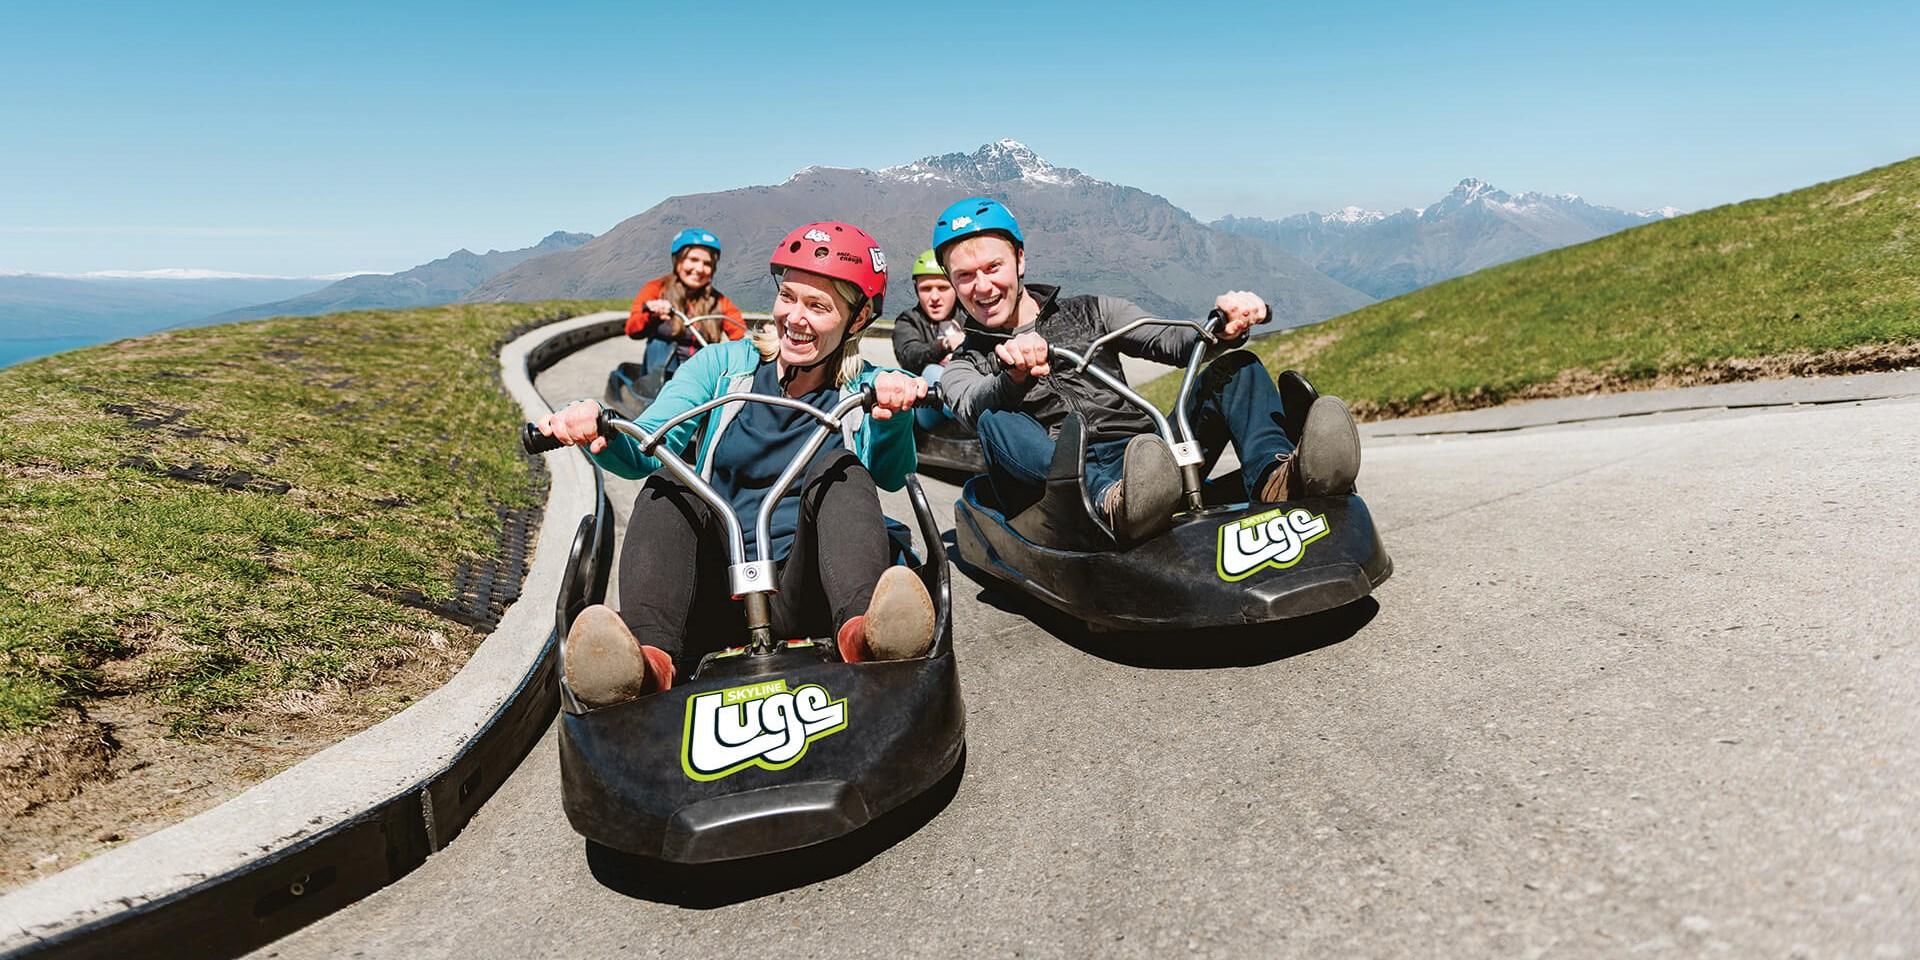 Friends enjoy the luge on a sunny day at Skyline Queenstown.